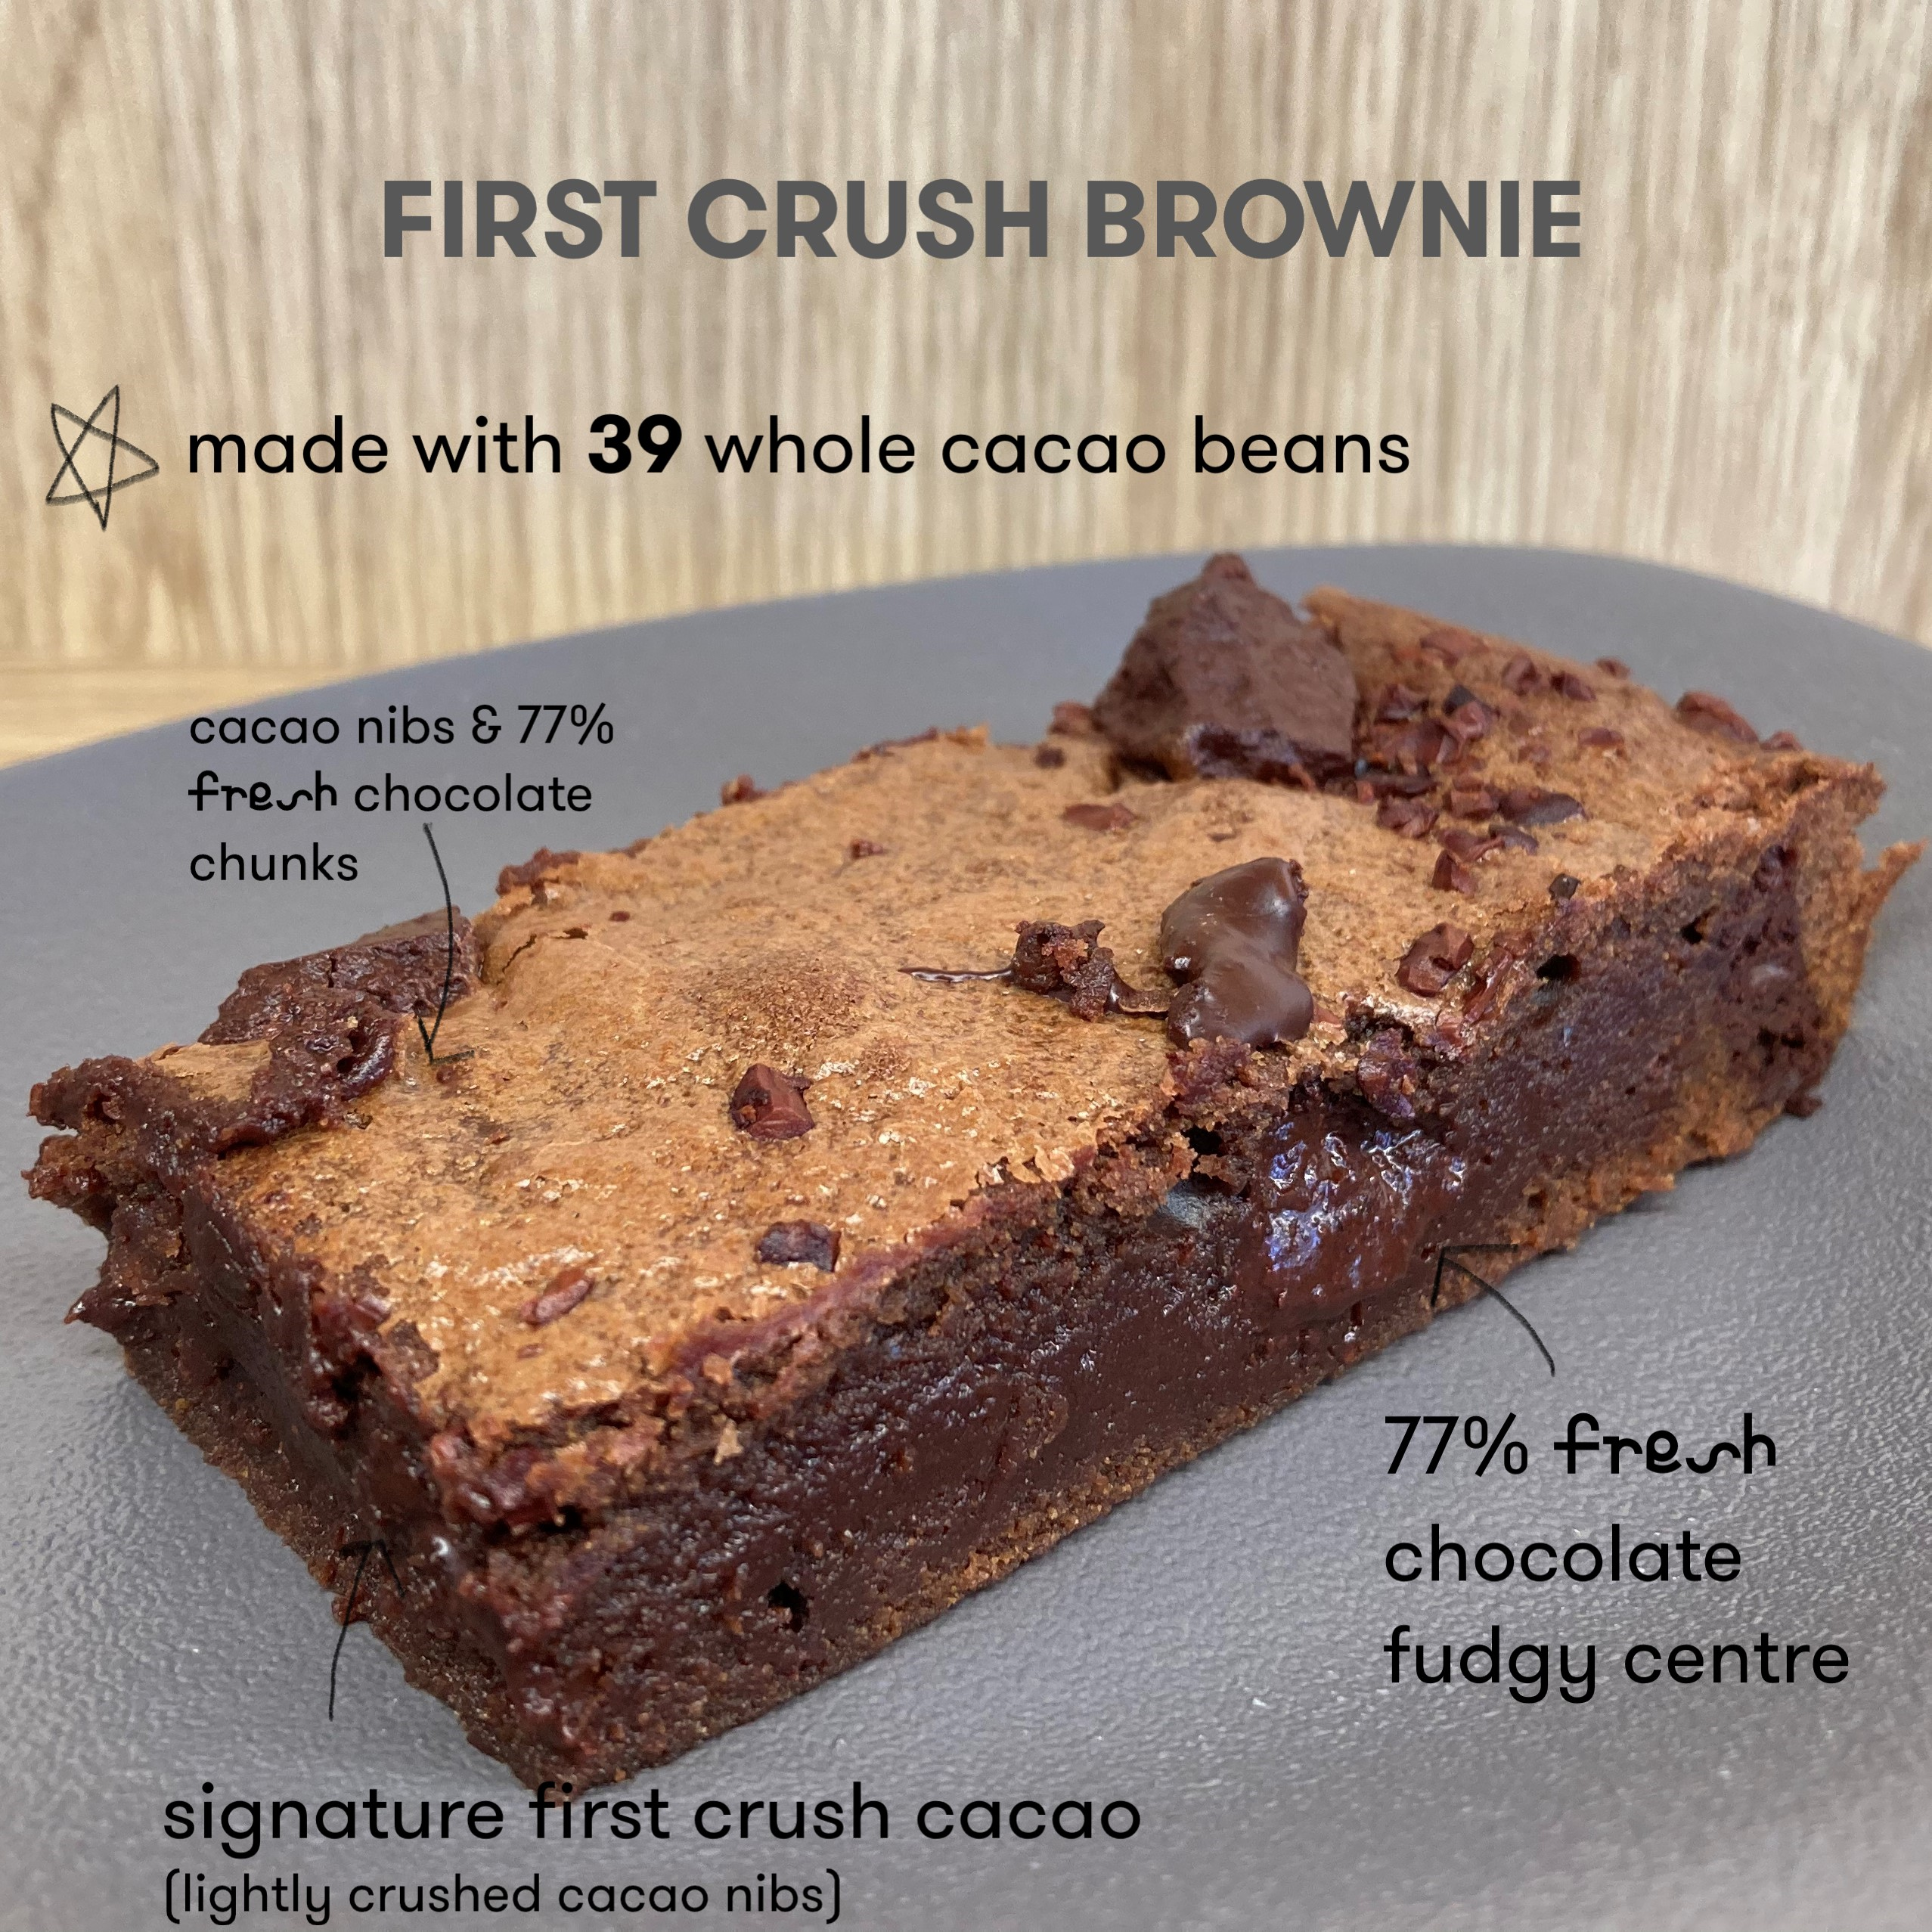 First crush brownie